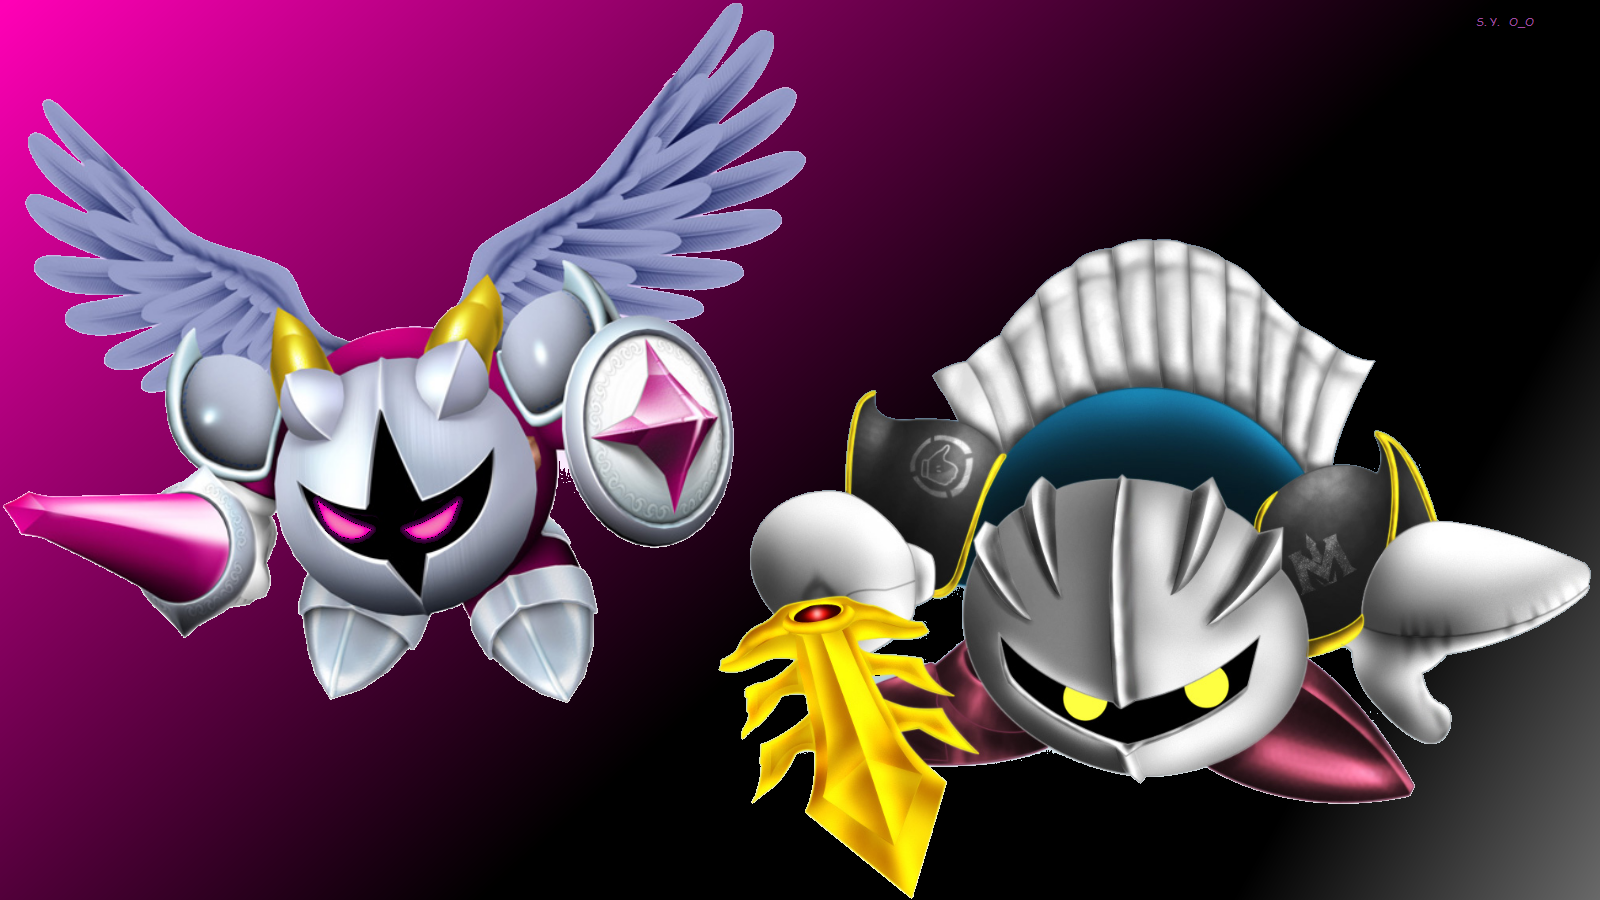 galacta_knight_and_meta_knight_wallpaper_by_umbra_heart-d4slnyx.png